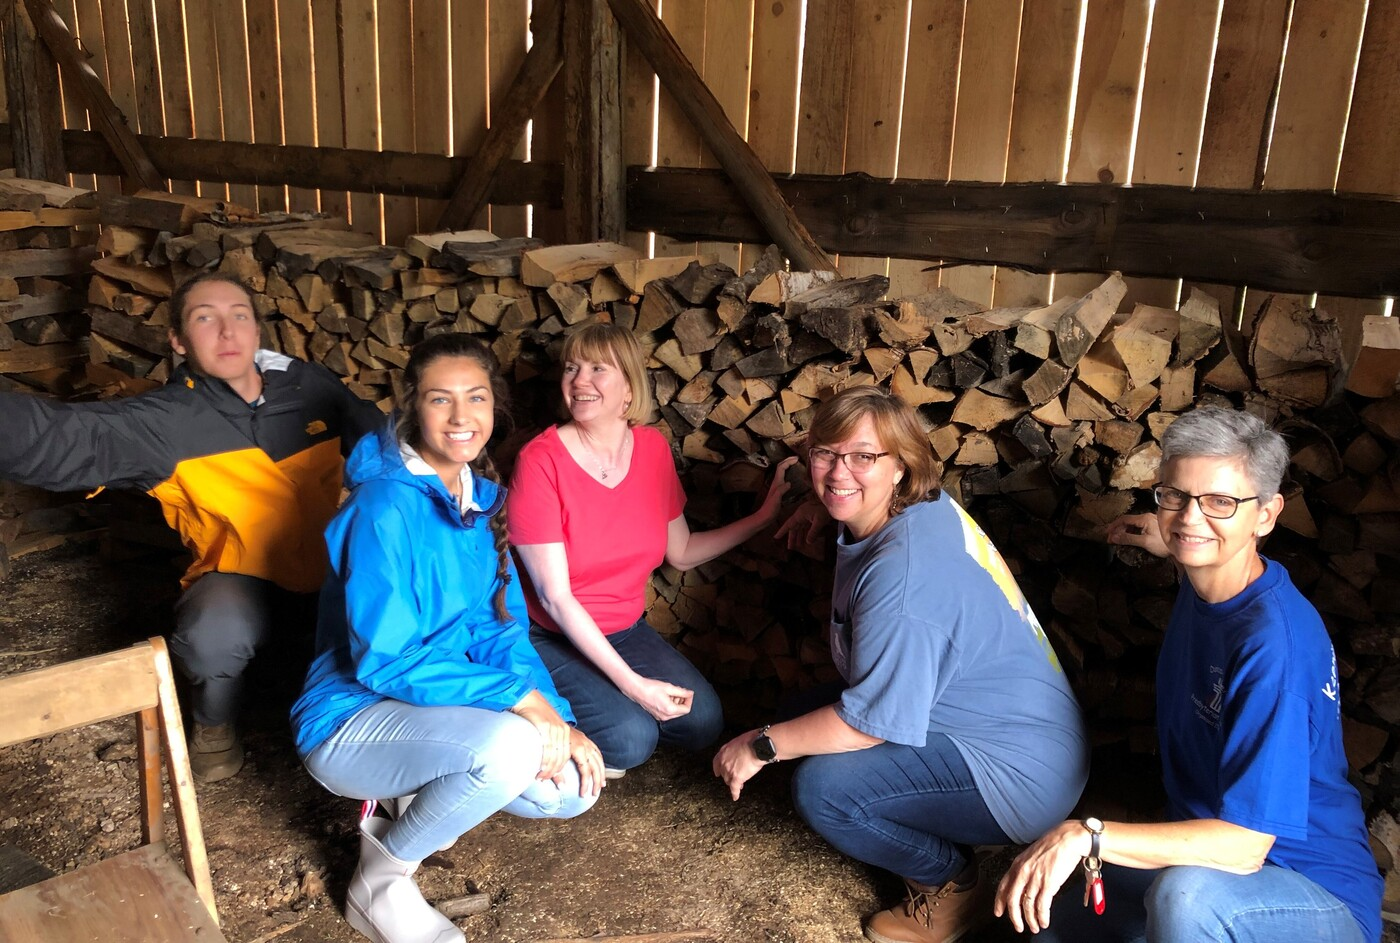 What the Davydovo community needed the most was help cleaning up the schoolyard at the kindergarten and stacking wood in a shed for the winter, which the group worked hard to do. They also had time for warm fellowship and to get to know the life and ministry of the community.